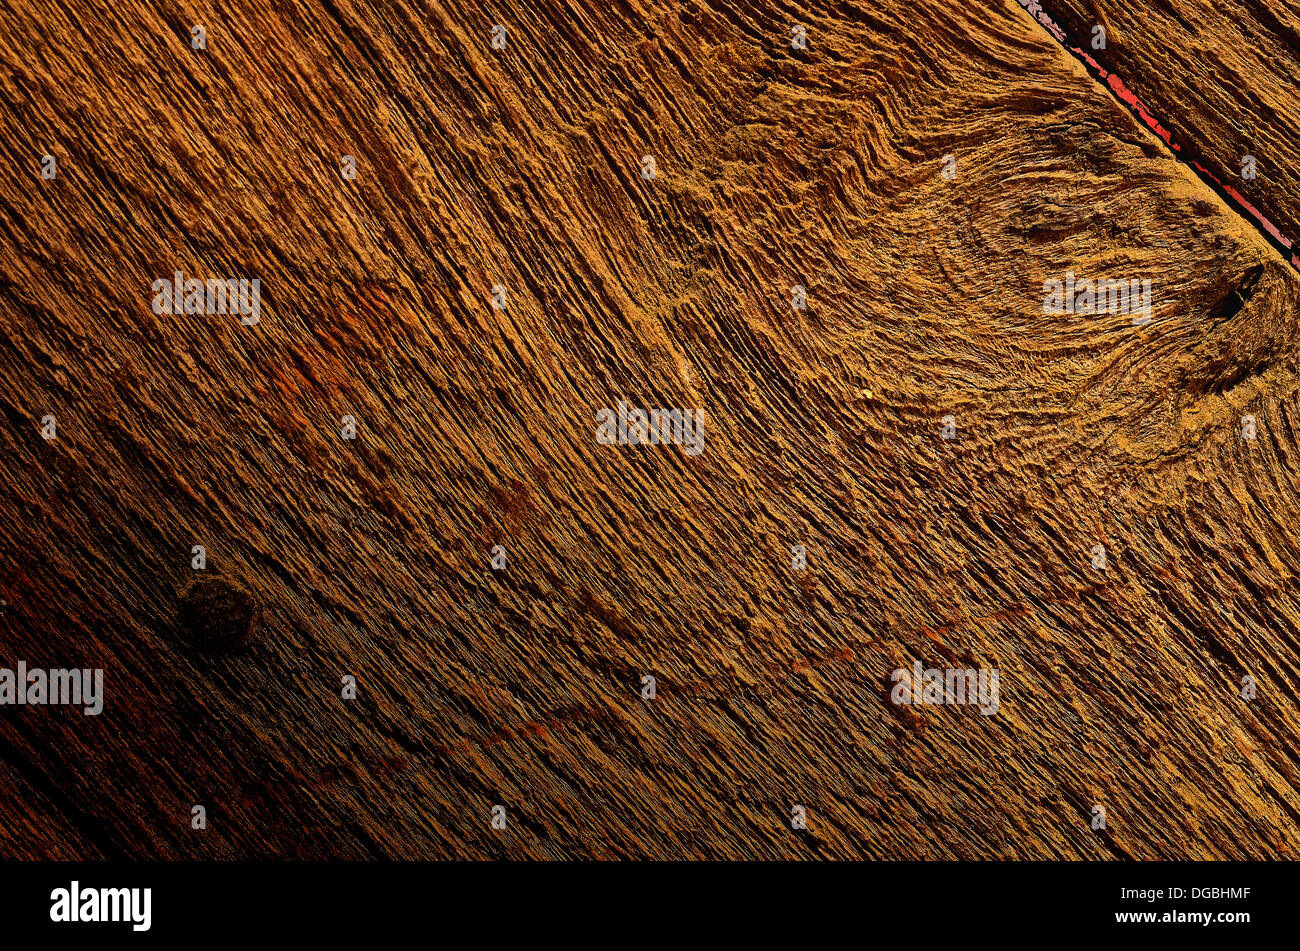 Old wooden surface and nail heads - Stock Image